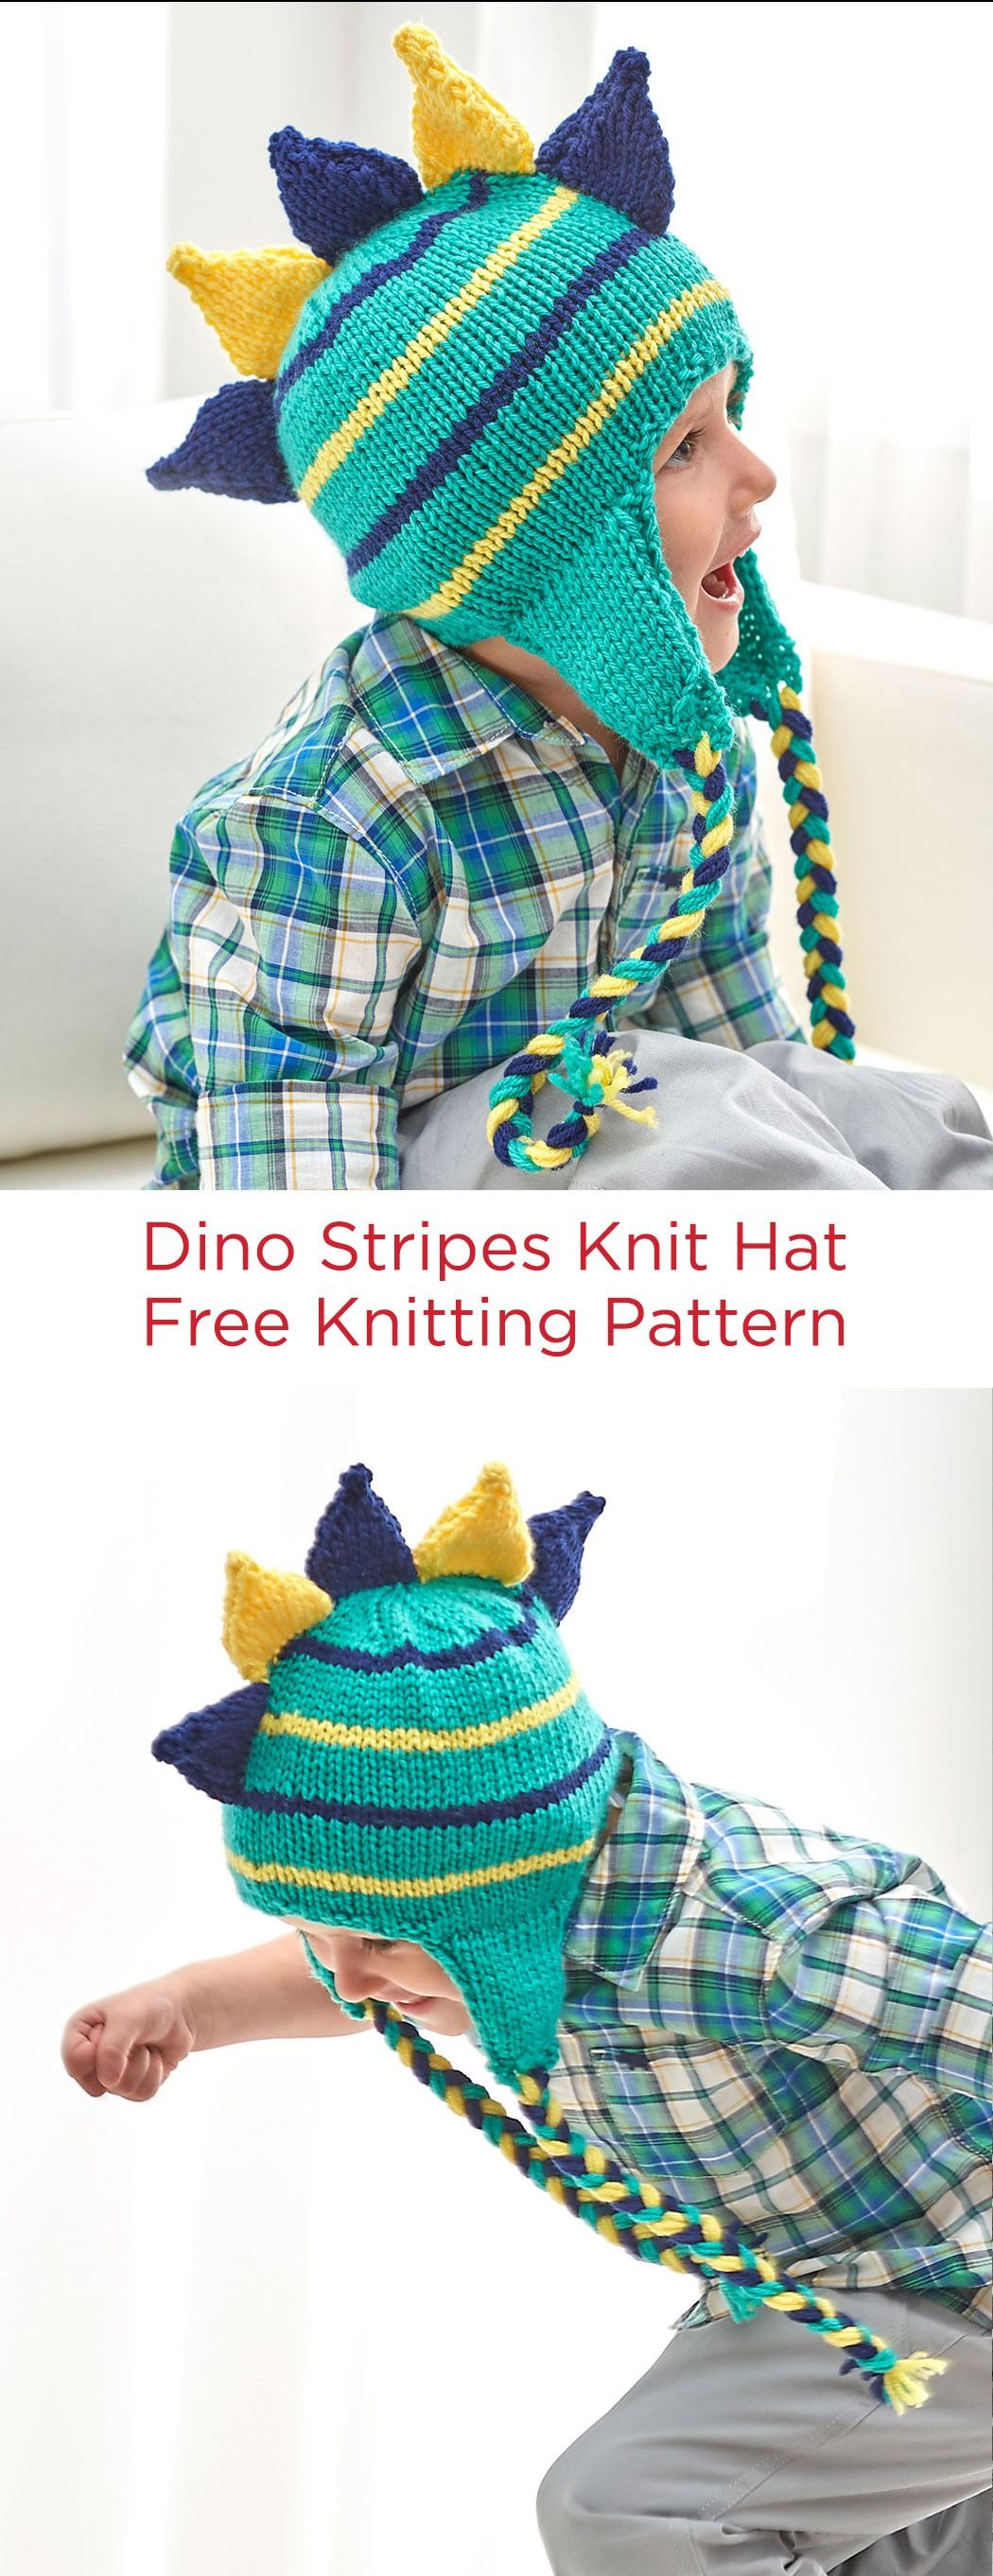 Dino Stripes Knit Hat Free Knitting Pattern in Red Heart Yarns ...